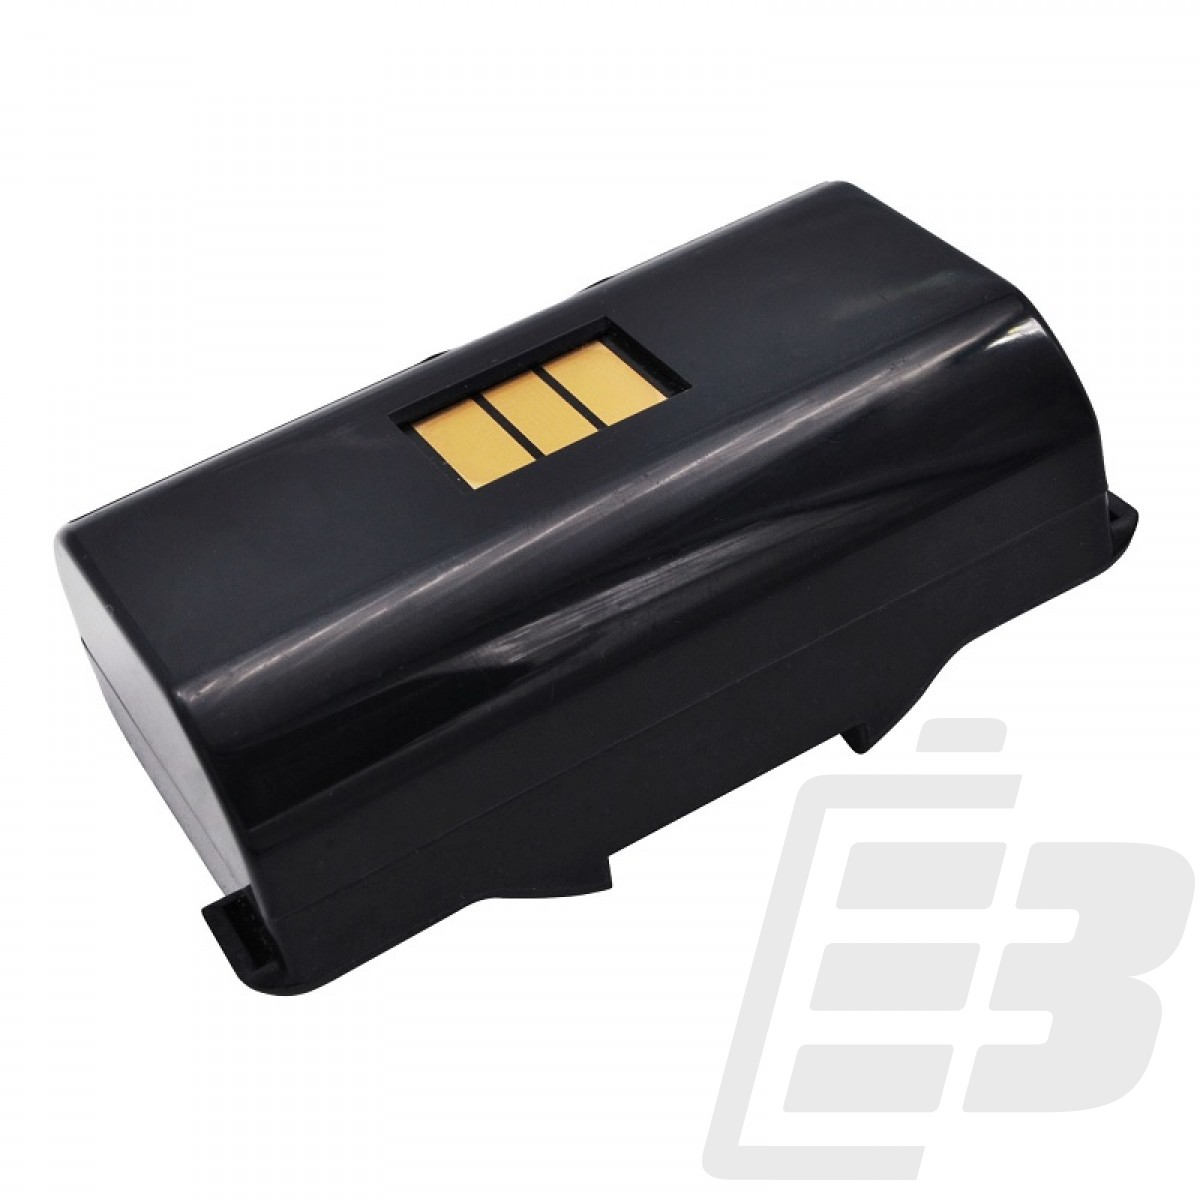 Barcode scanner battery Intermec CK60_1